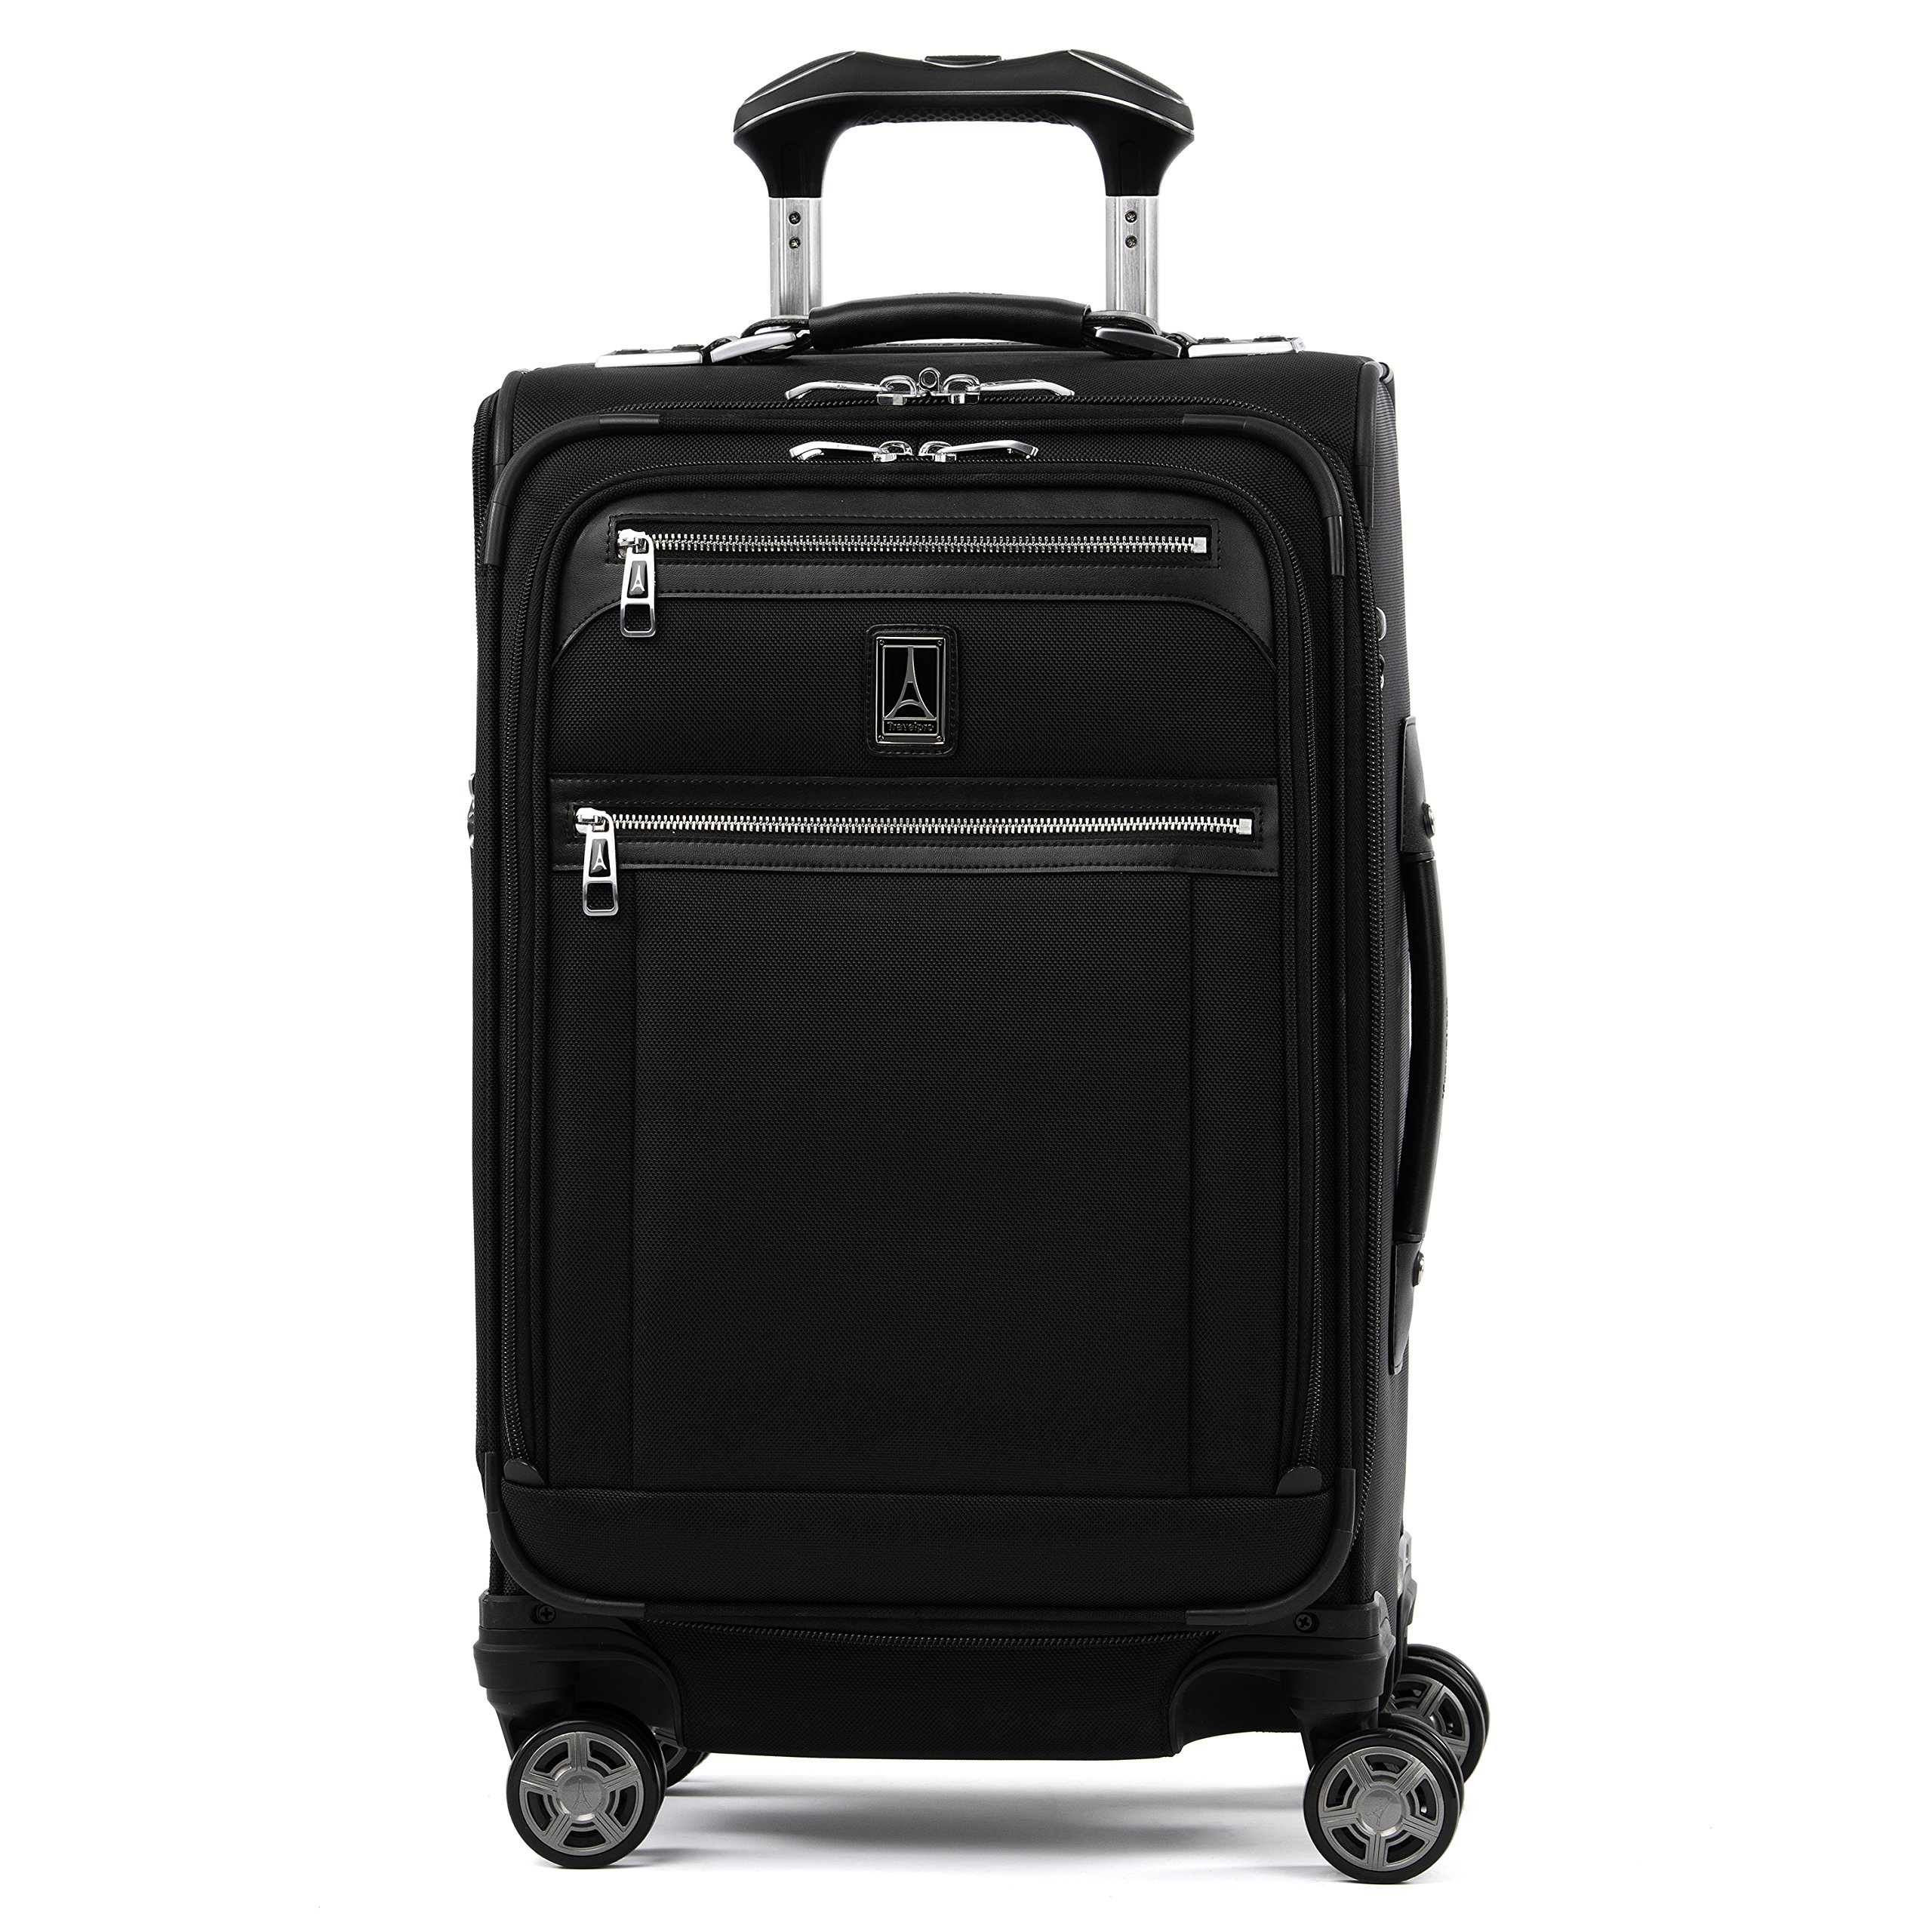 Travelpro Luggage Platinum Elite 21'' Expandable Carry-On Spinner, Shadow Black